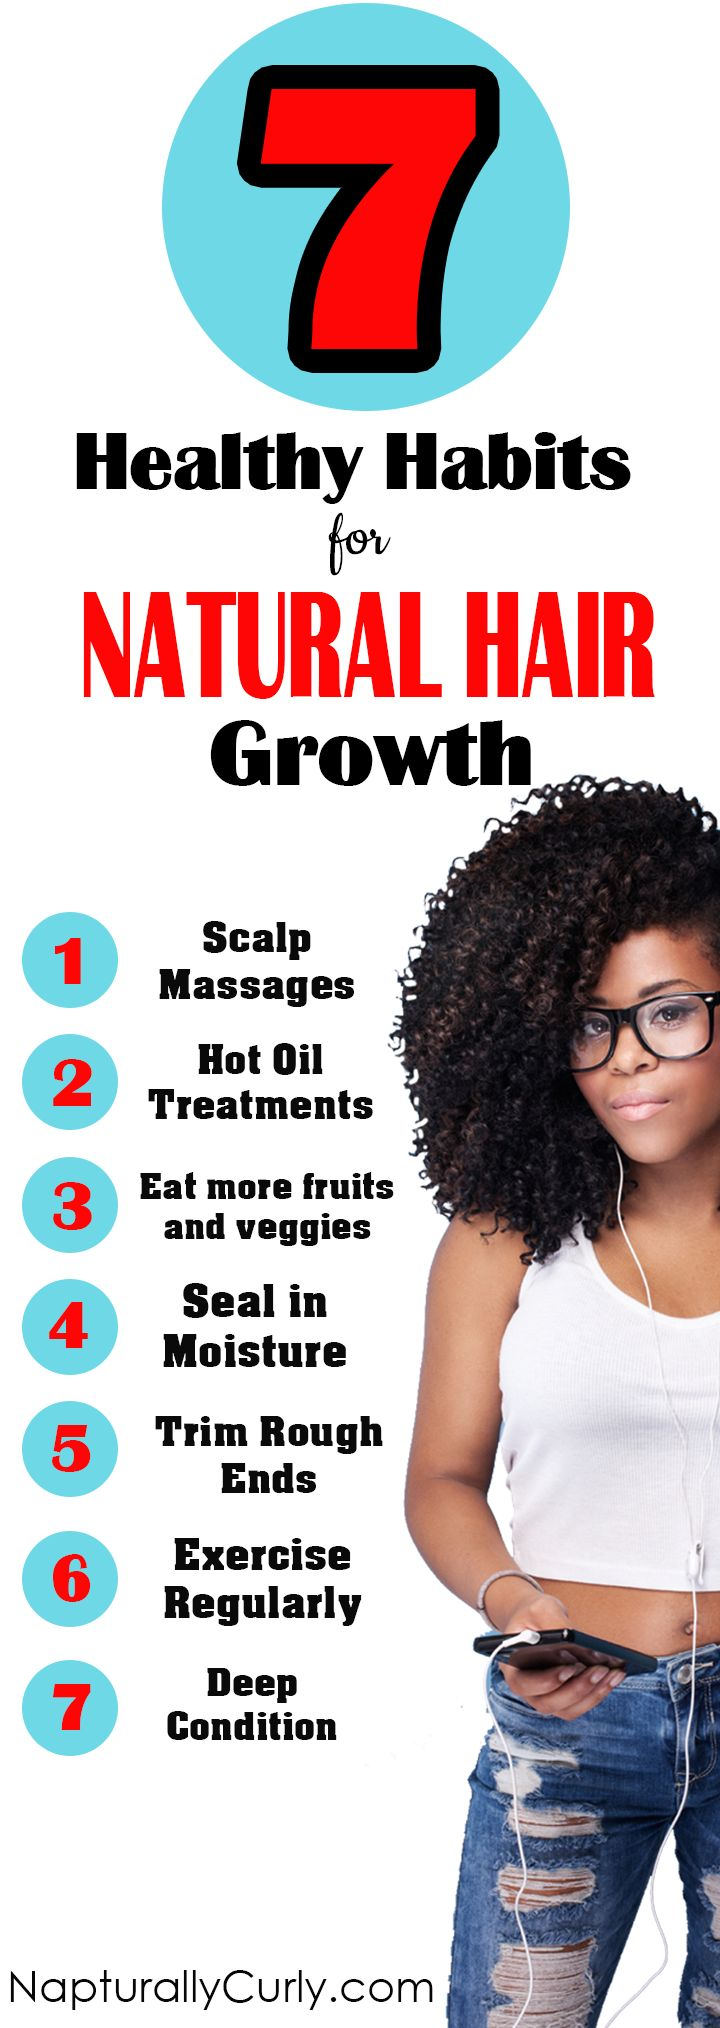 Great Habits To Grow Your Natural Hair Longer